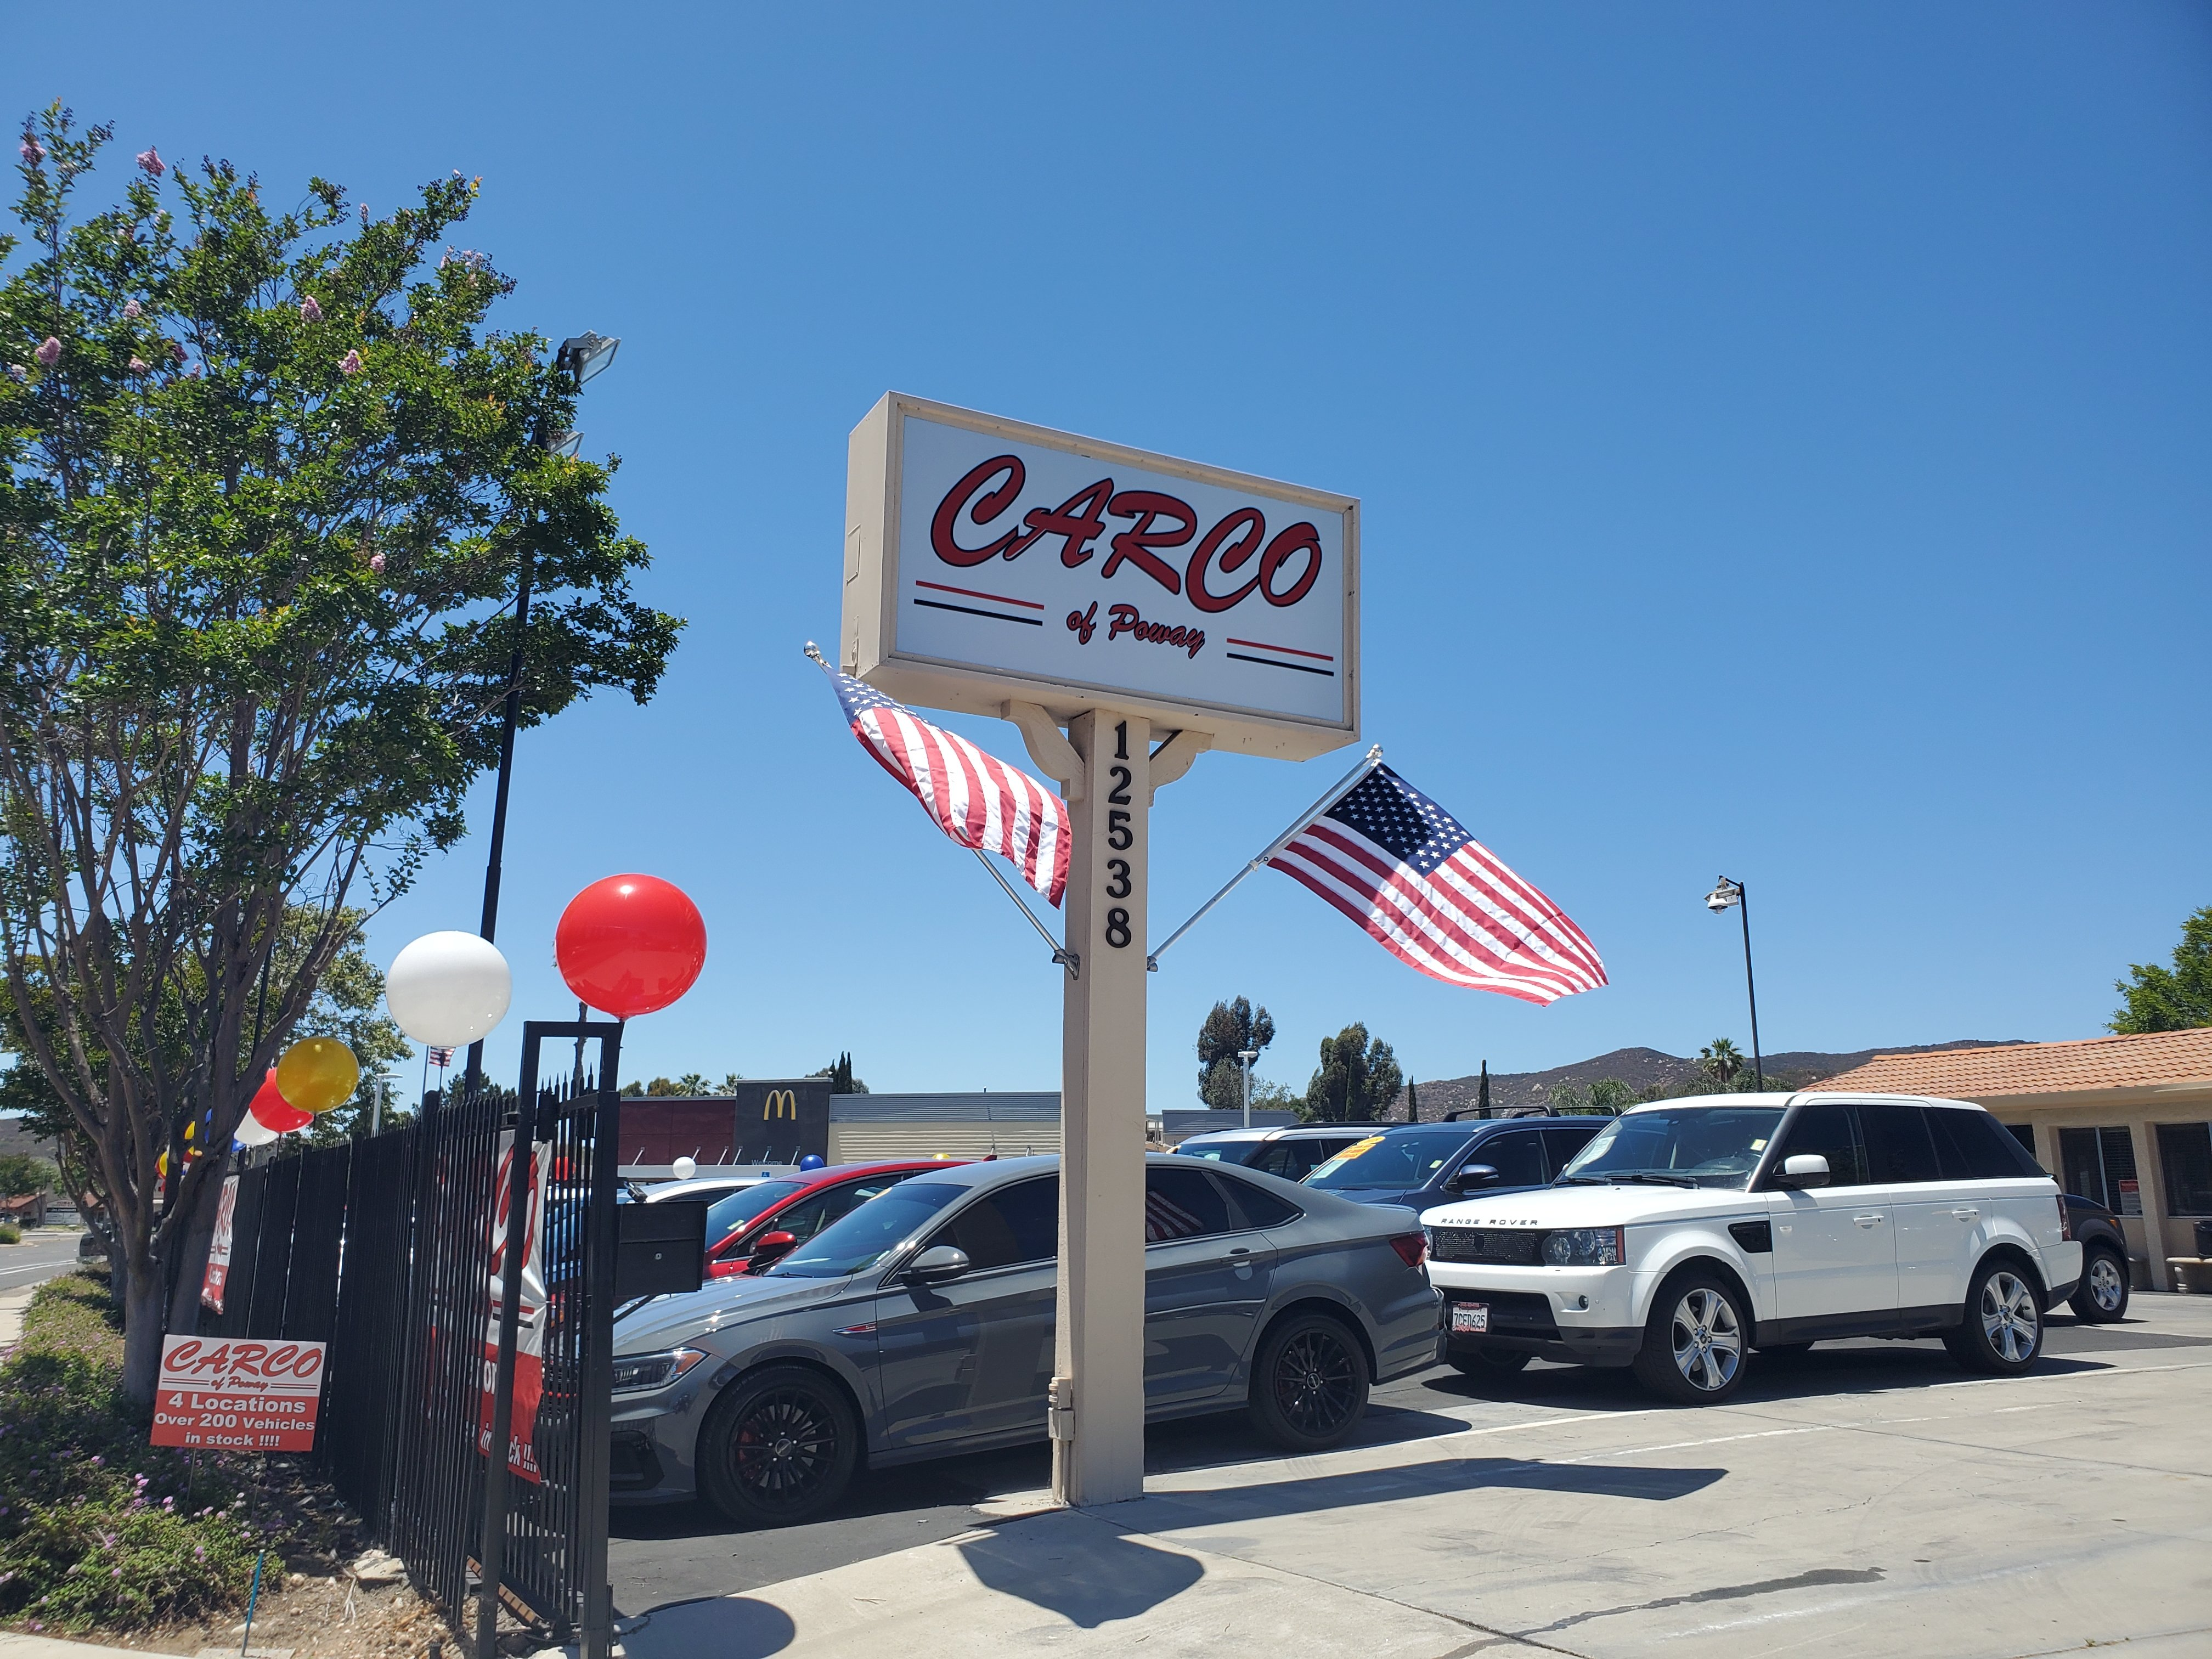 CARCO OF POWAY